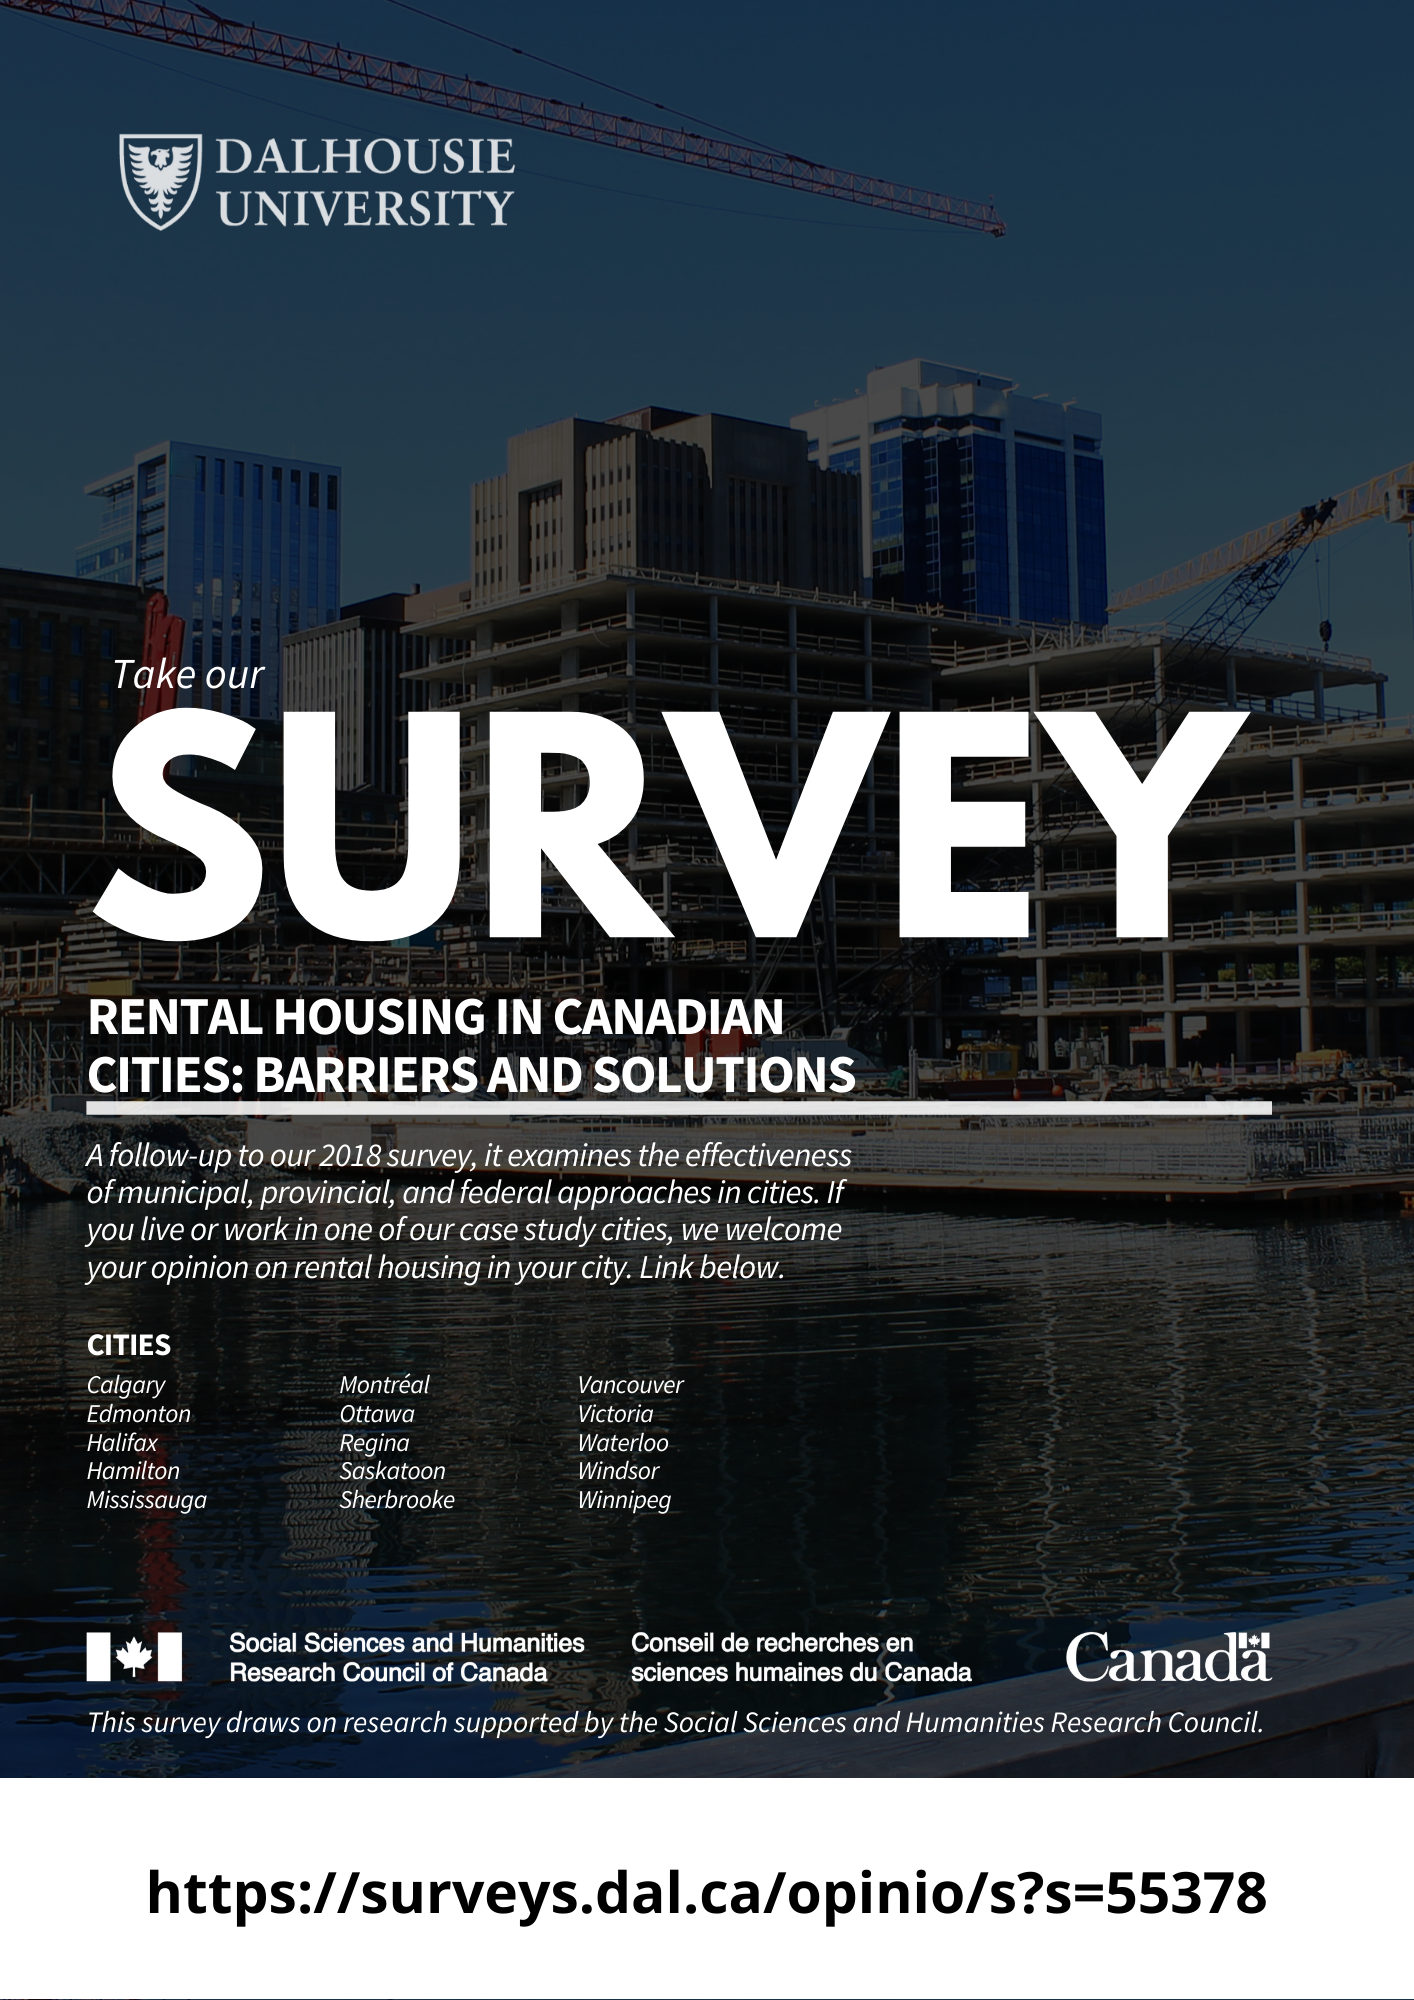 Help us evaluate your city's rental housing approach!